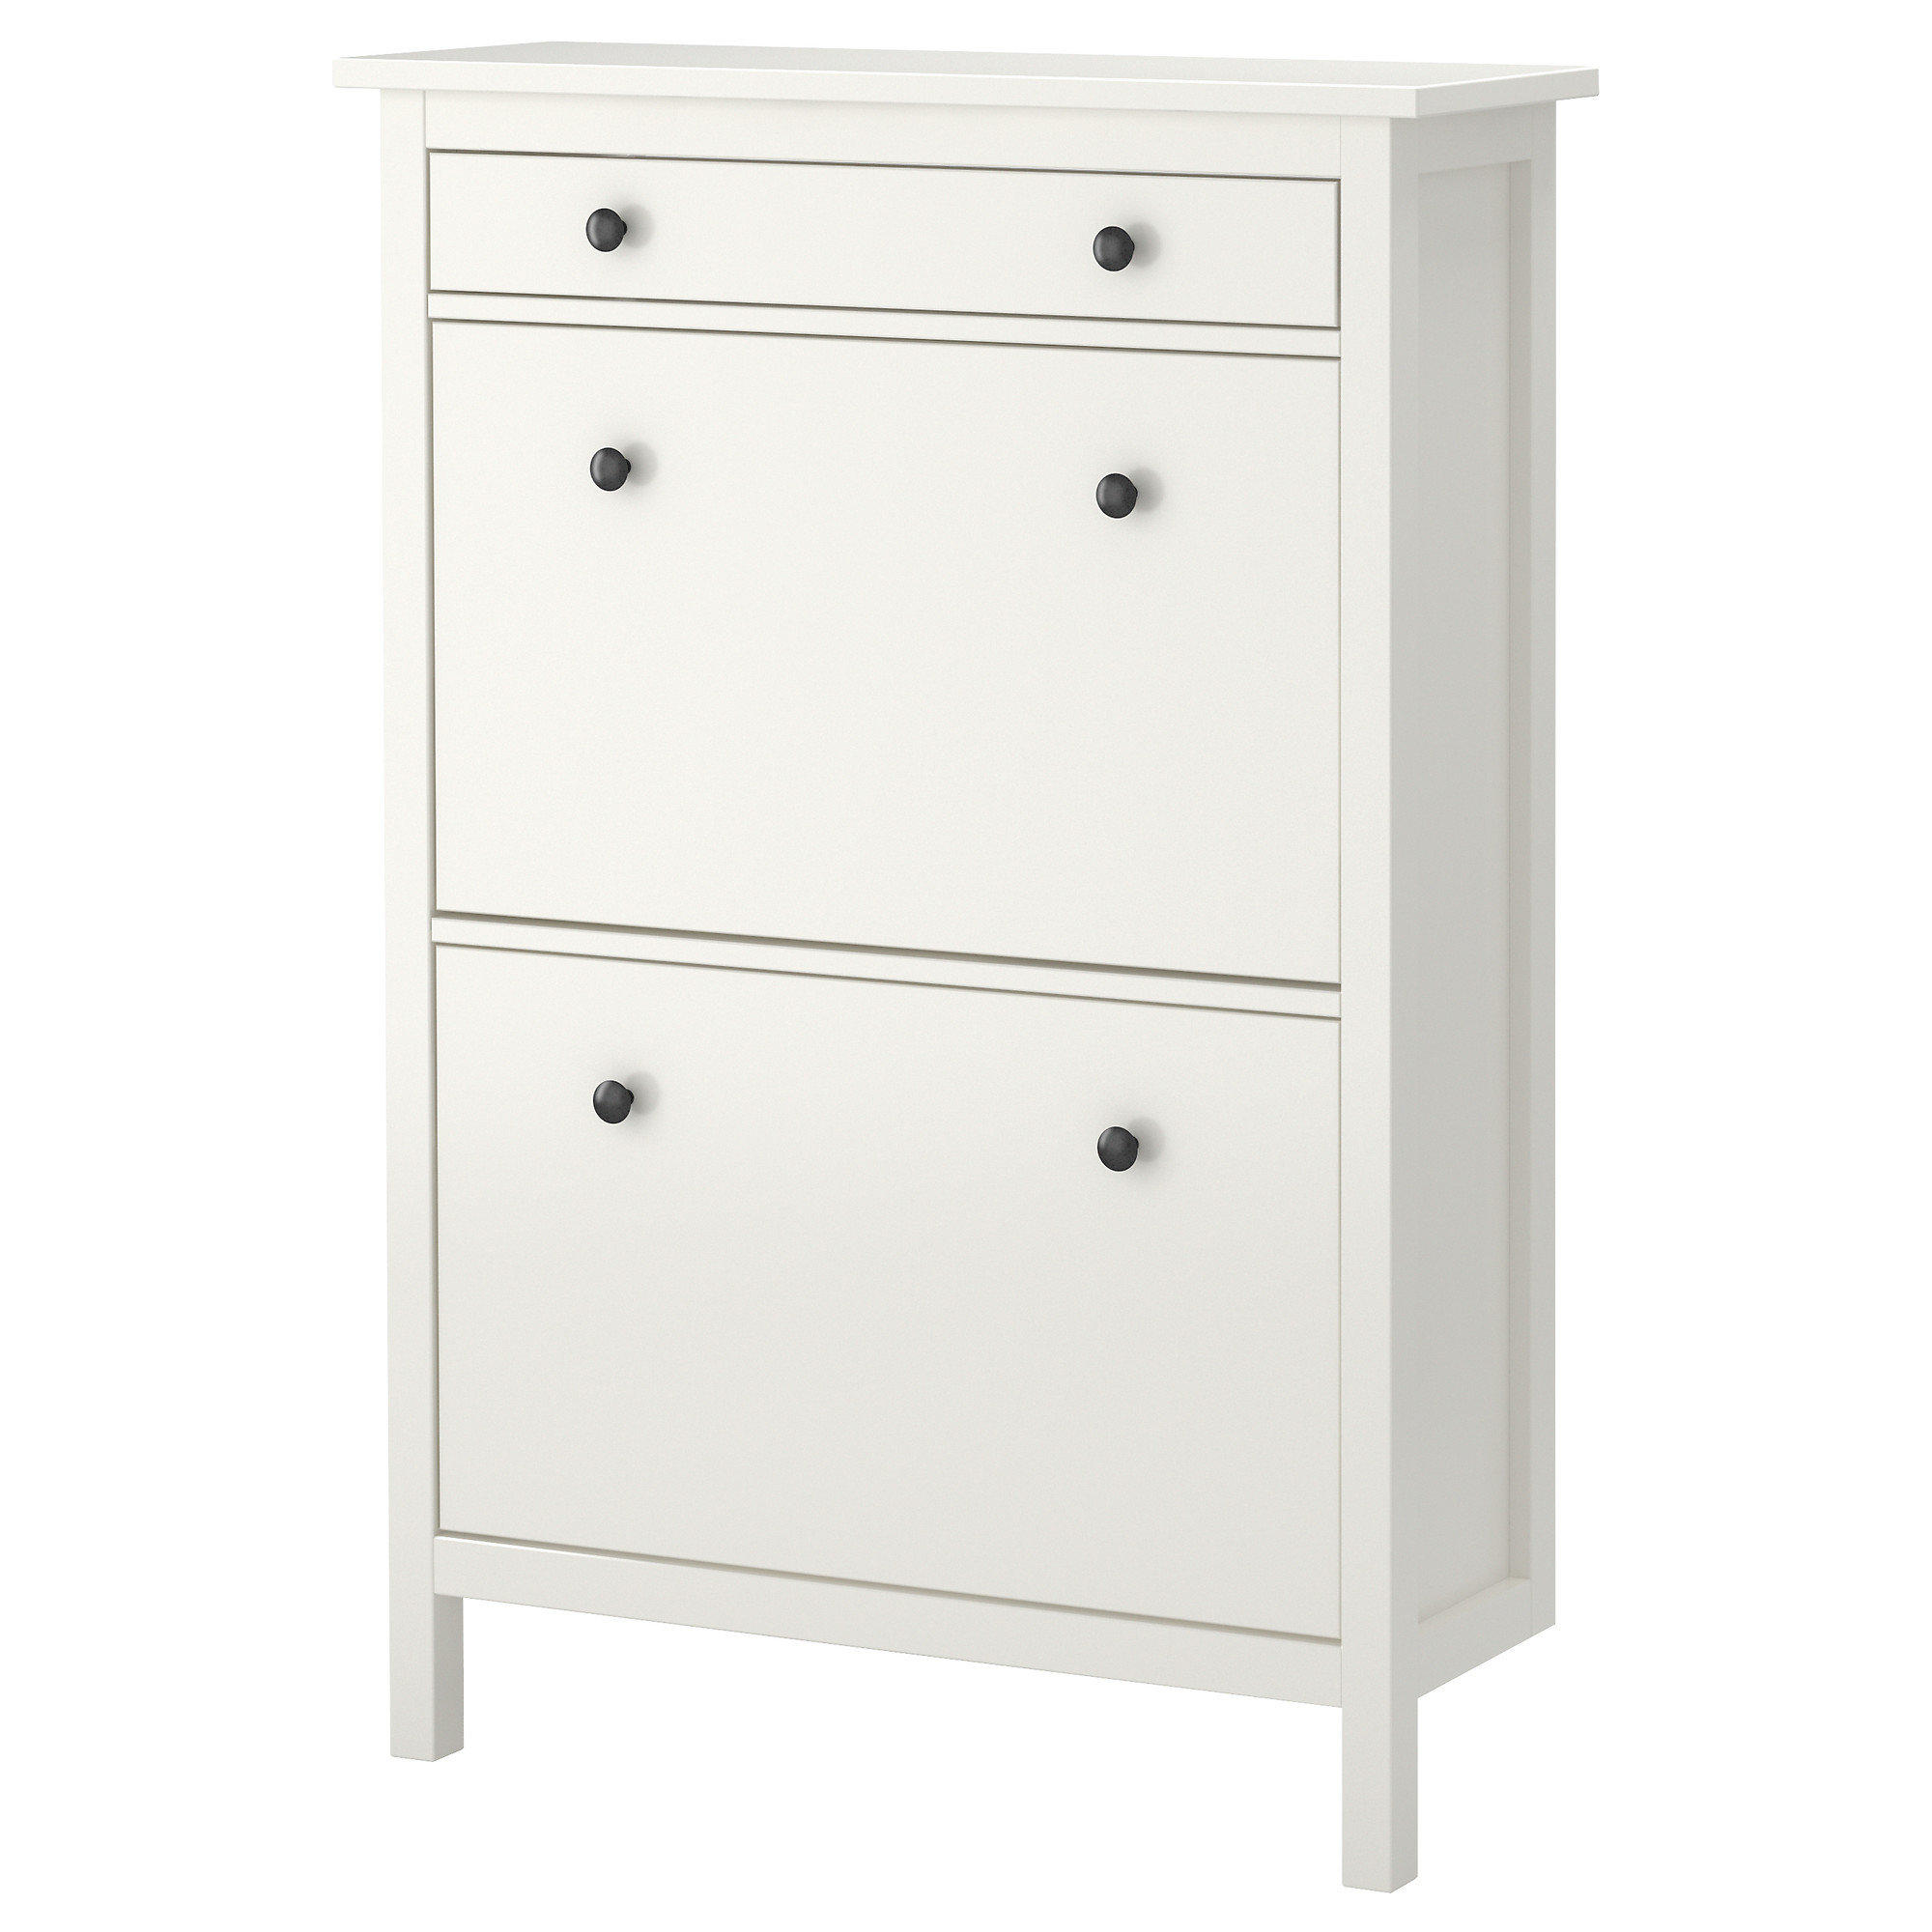 Hemnes Shoe Cabinet With 2 Compartments From Ikea